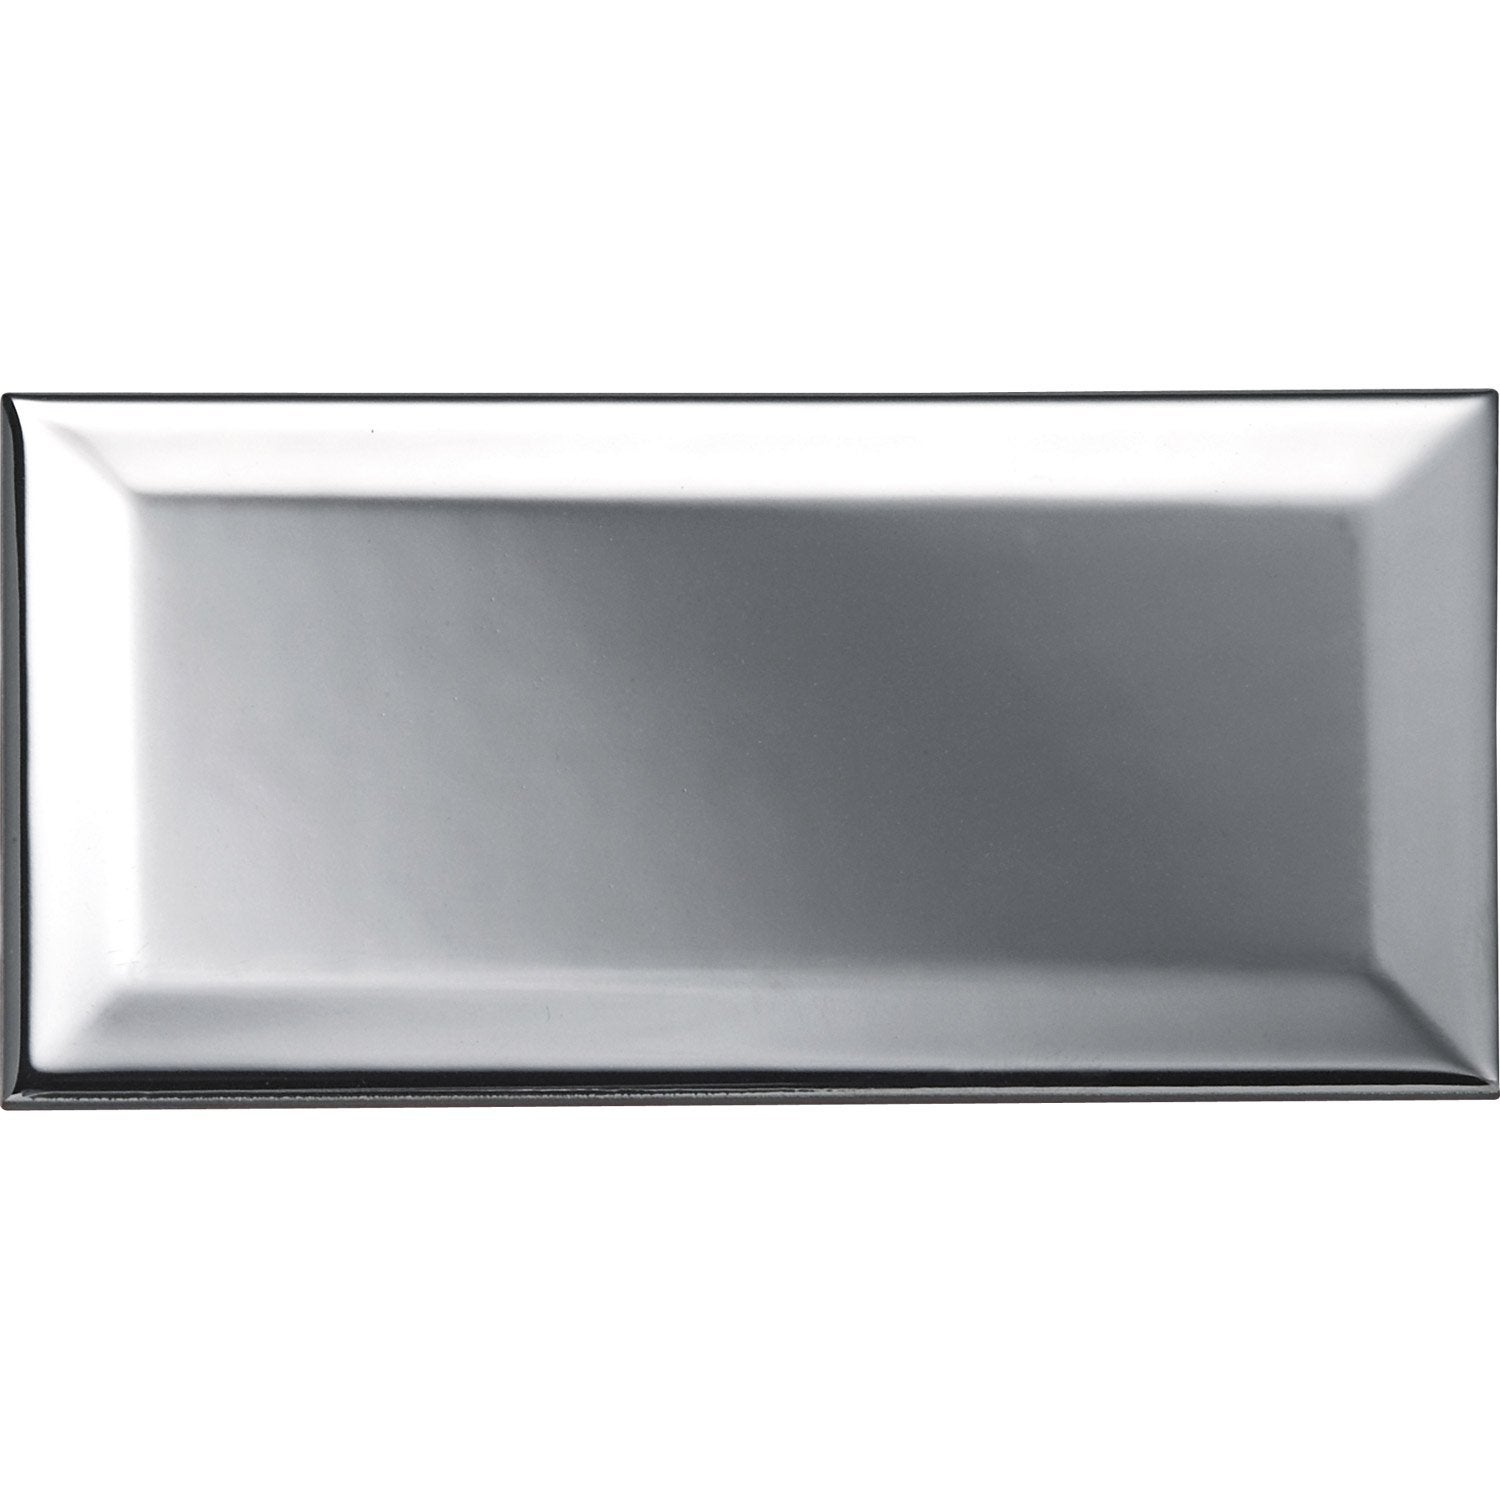 Carreau m tro argent l 7 5 x cm leroy merlin for Leroy merlin carrelage metro blanc